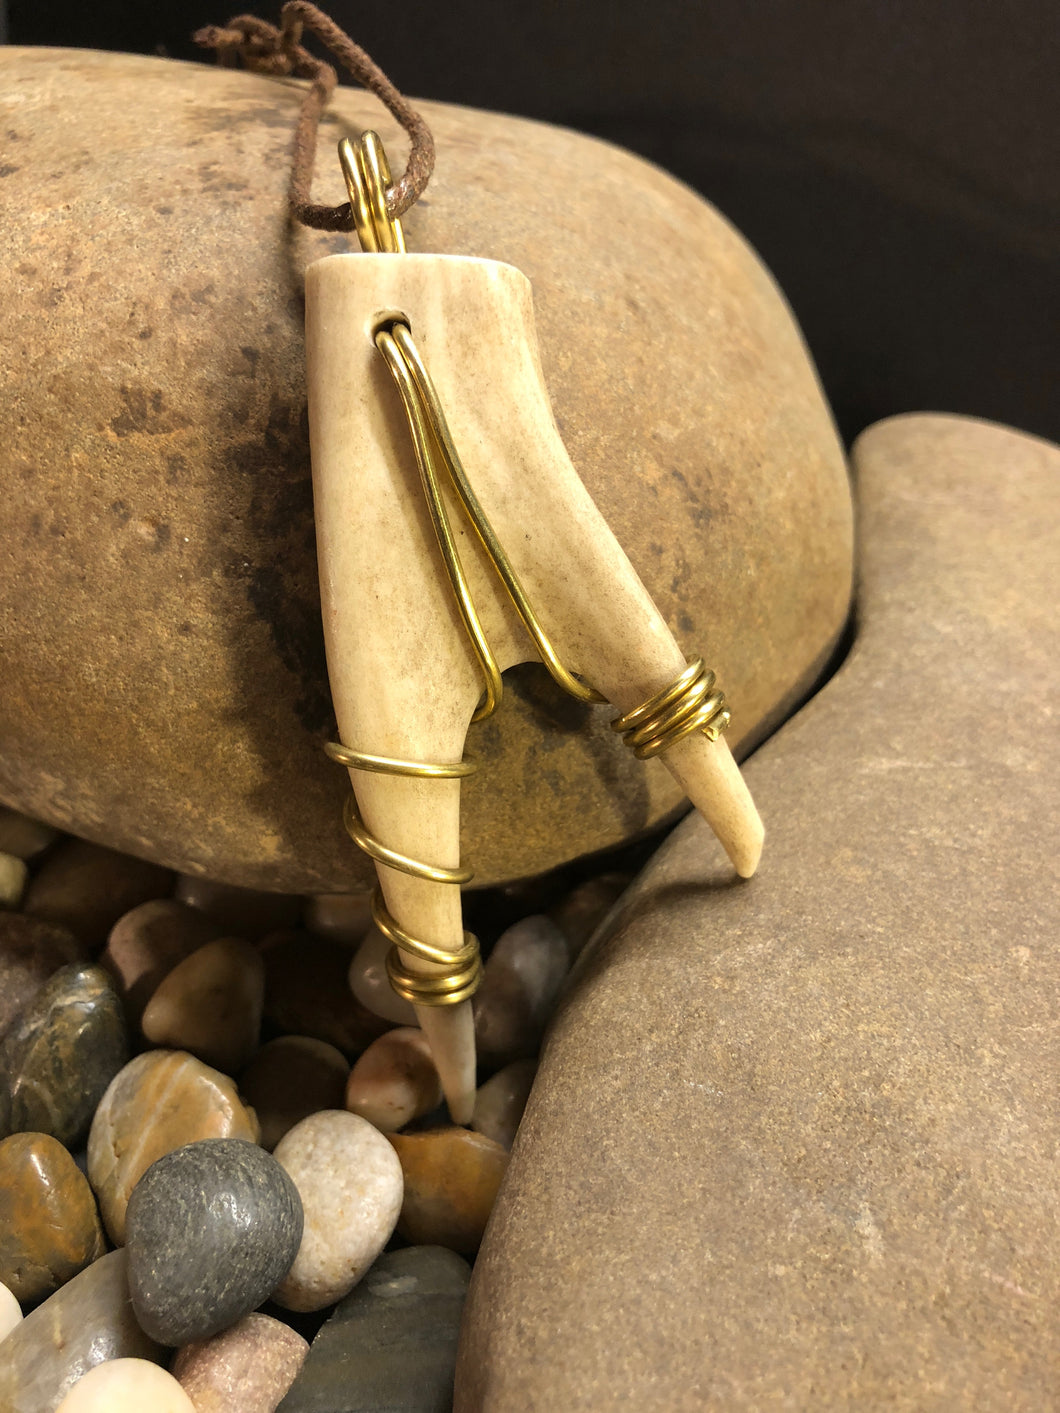 Copper Wrapped Deer Horn with Cord Necklace